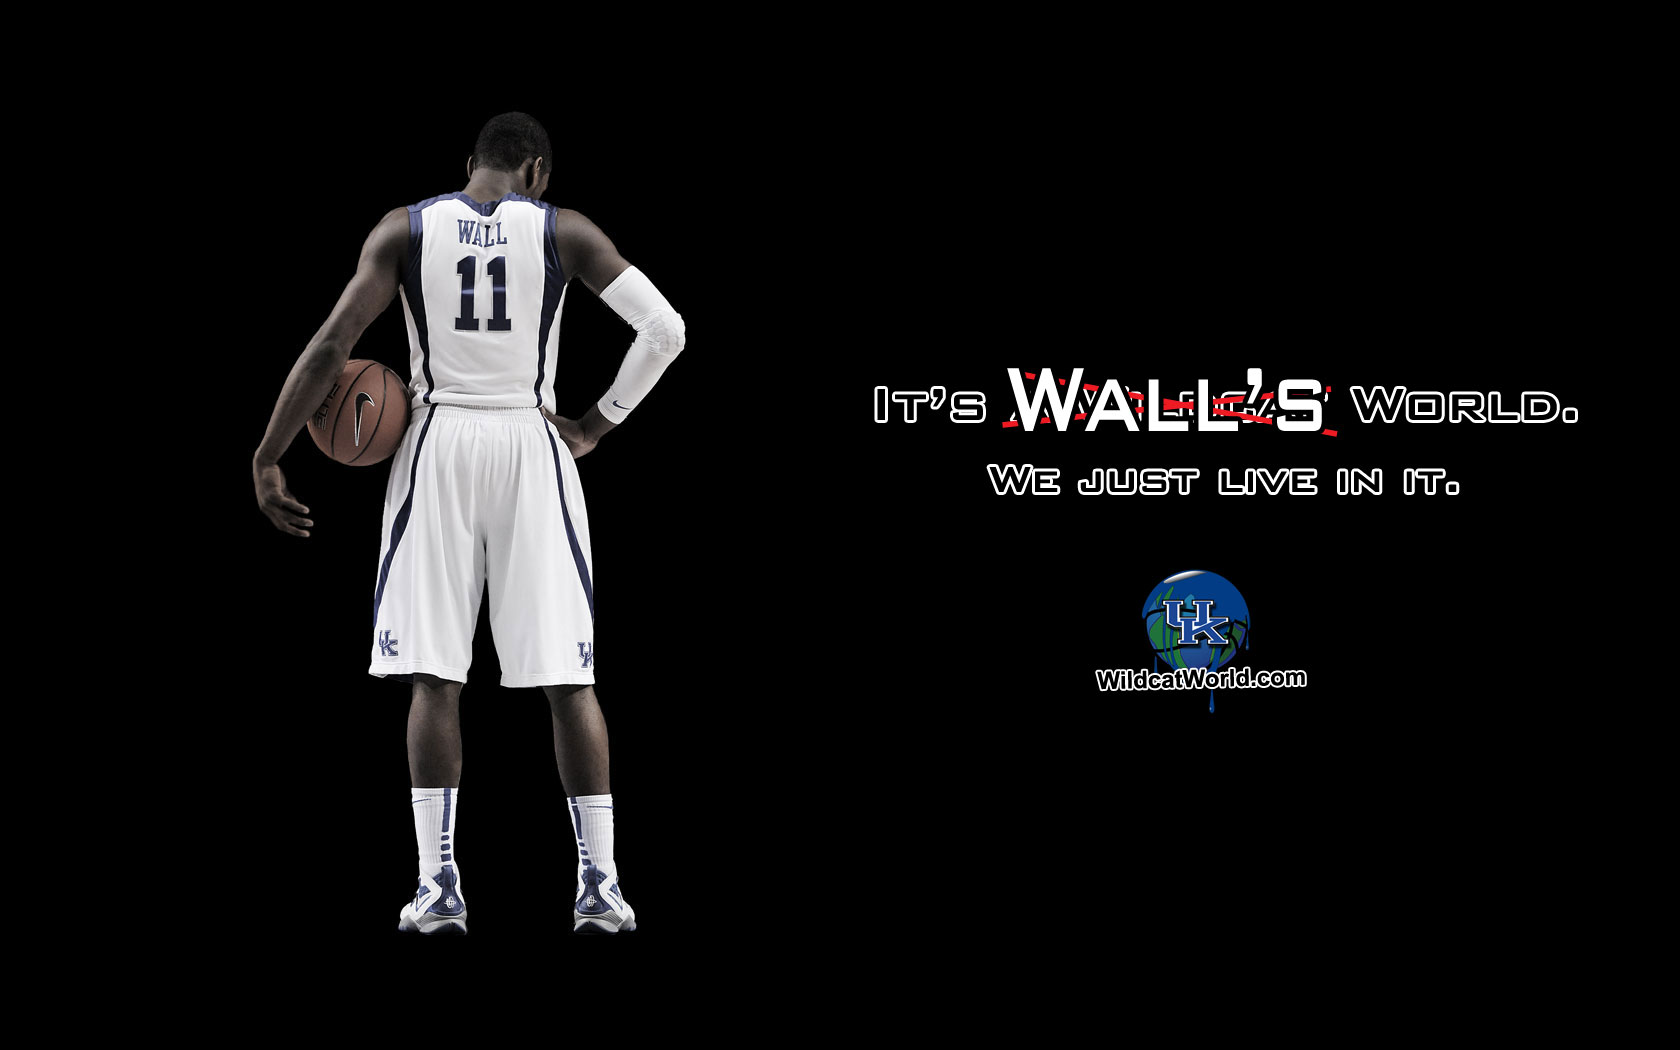 New Kentucky basketball wallpaper uploaded